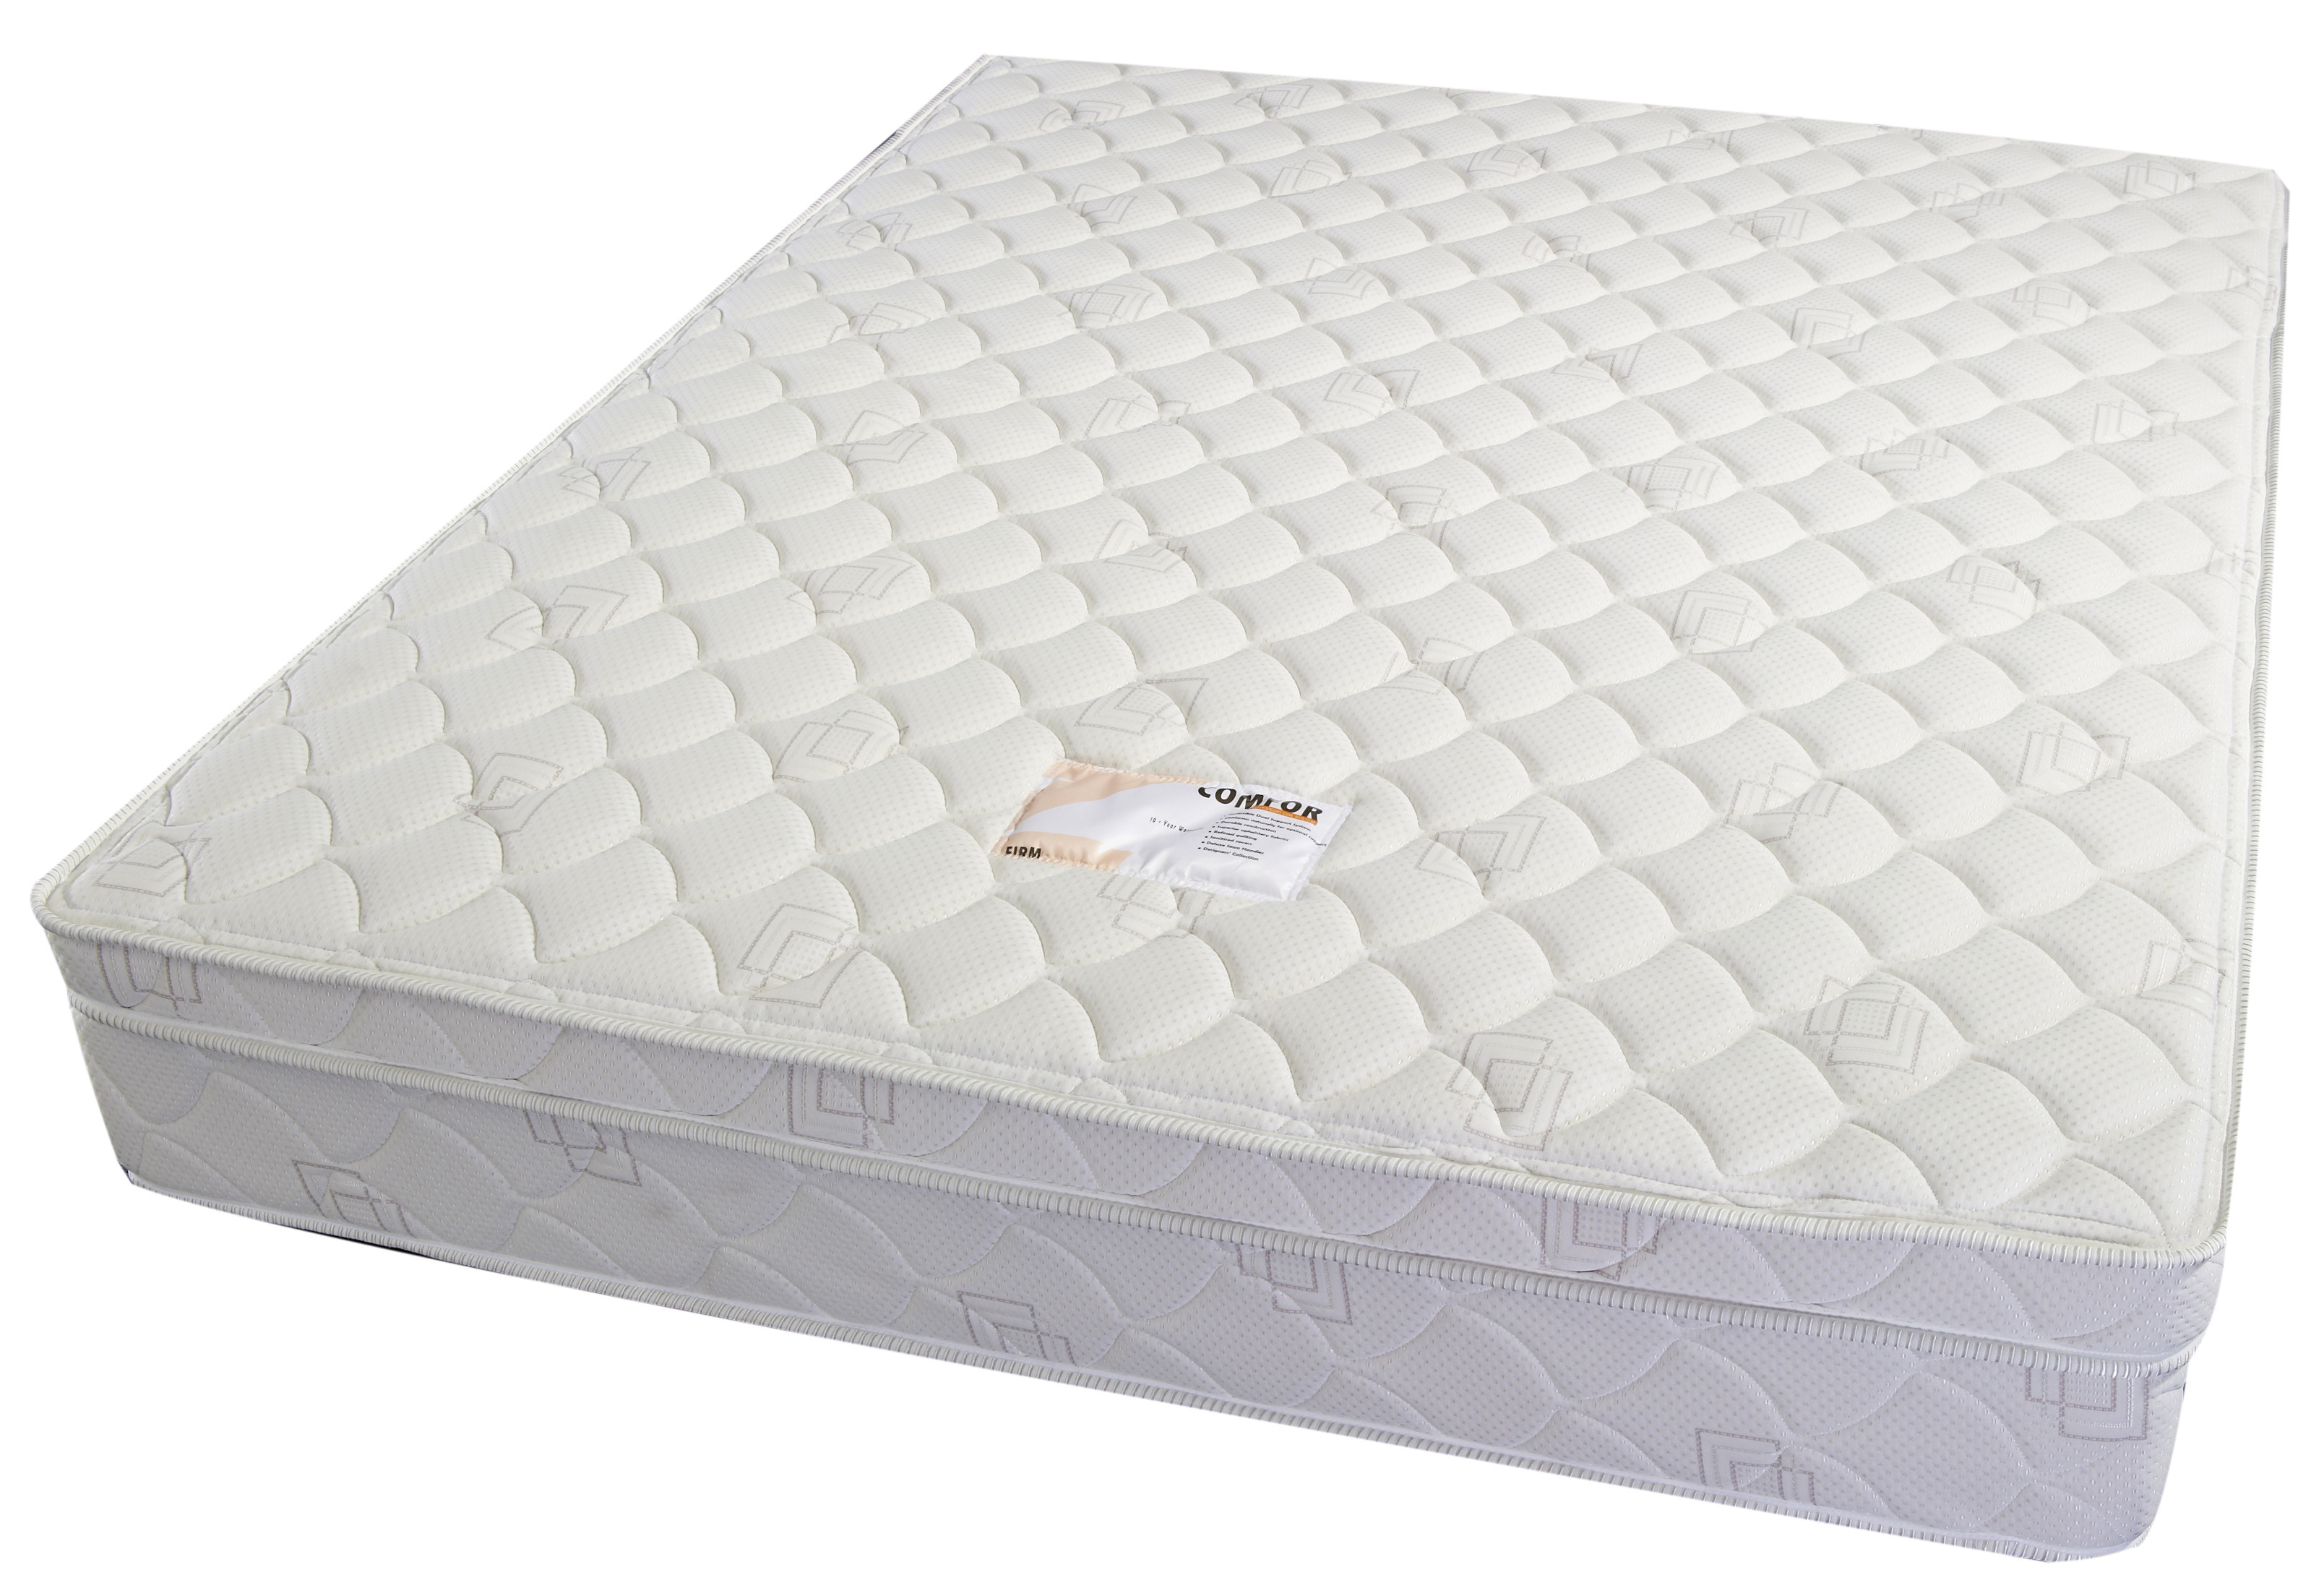 yankee of double john old pillow unique orthopedic month lewis factory mattress top inspirational orthopaedic